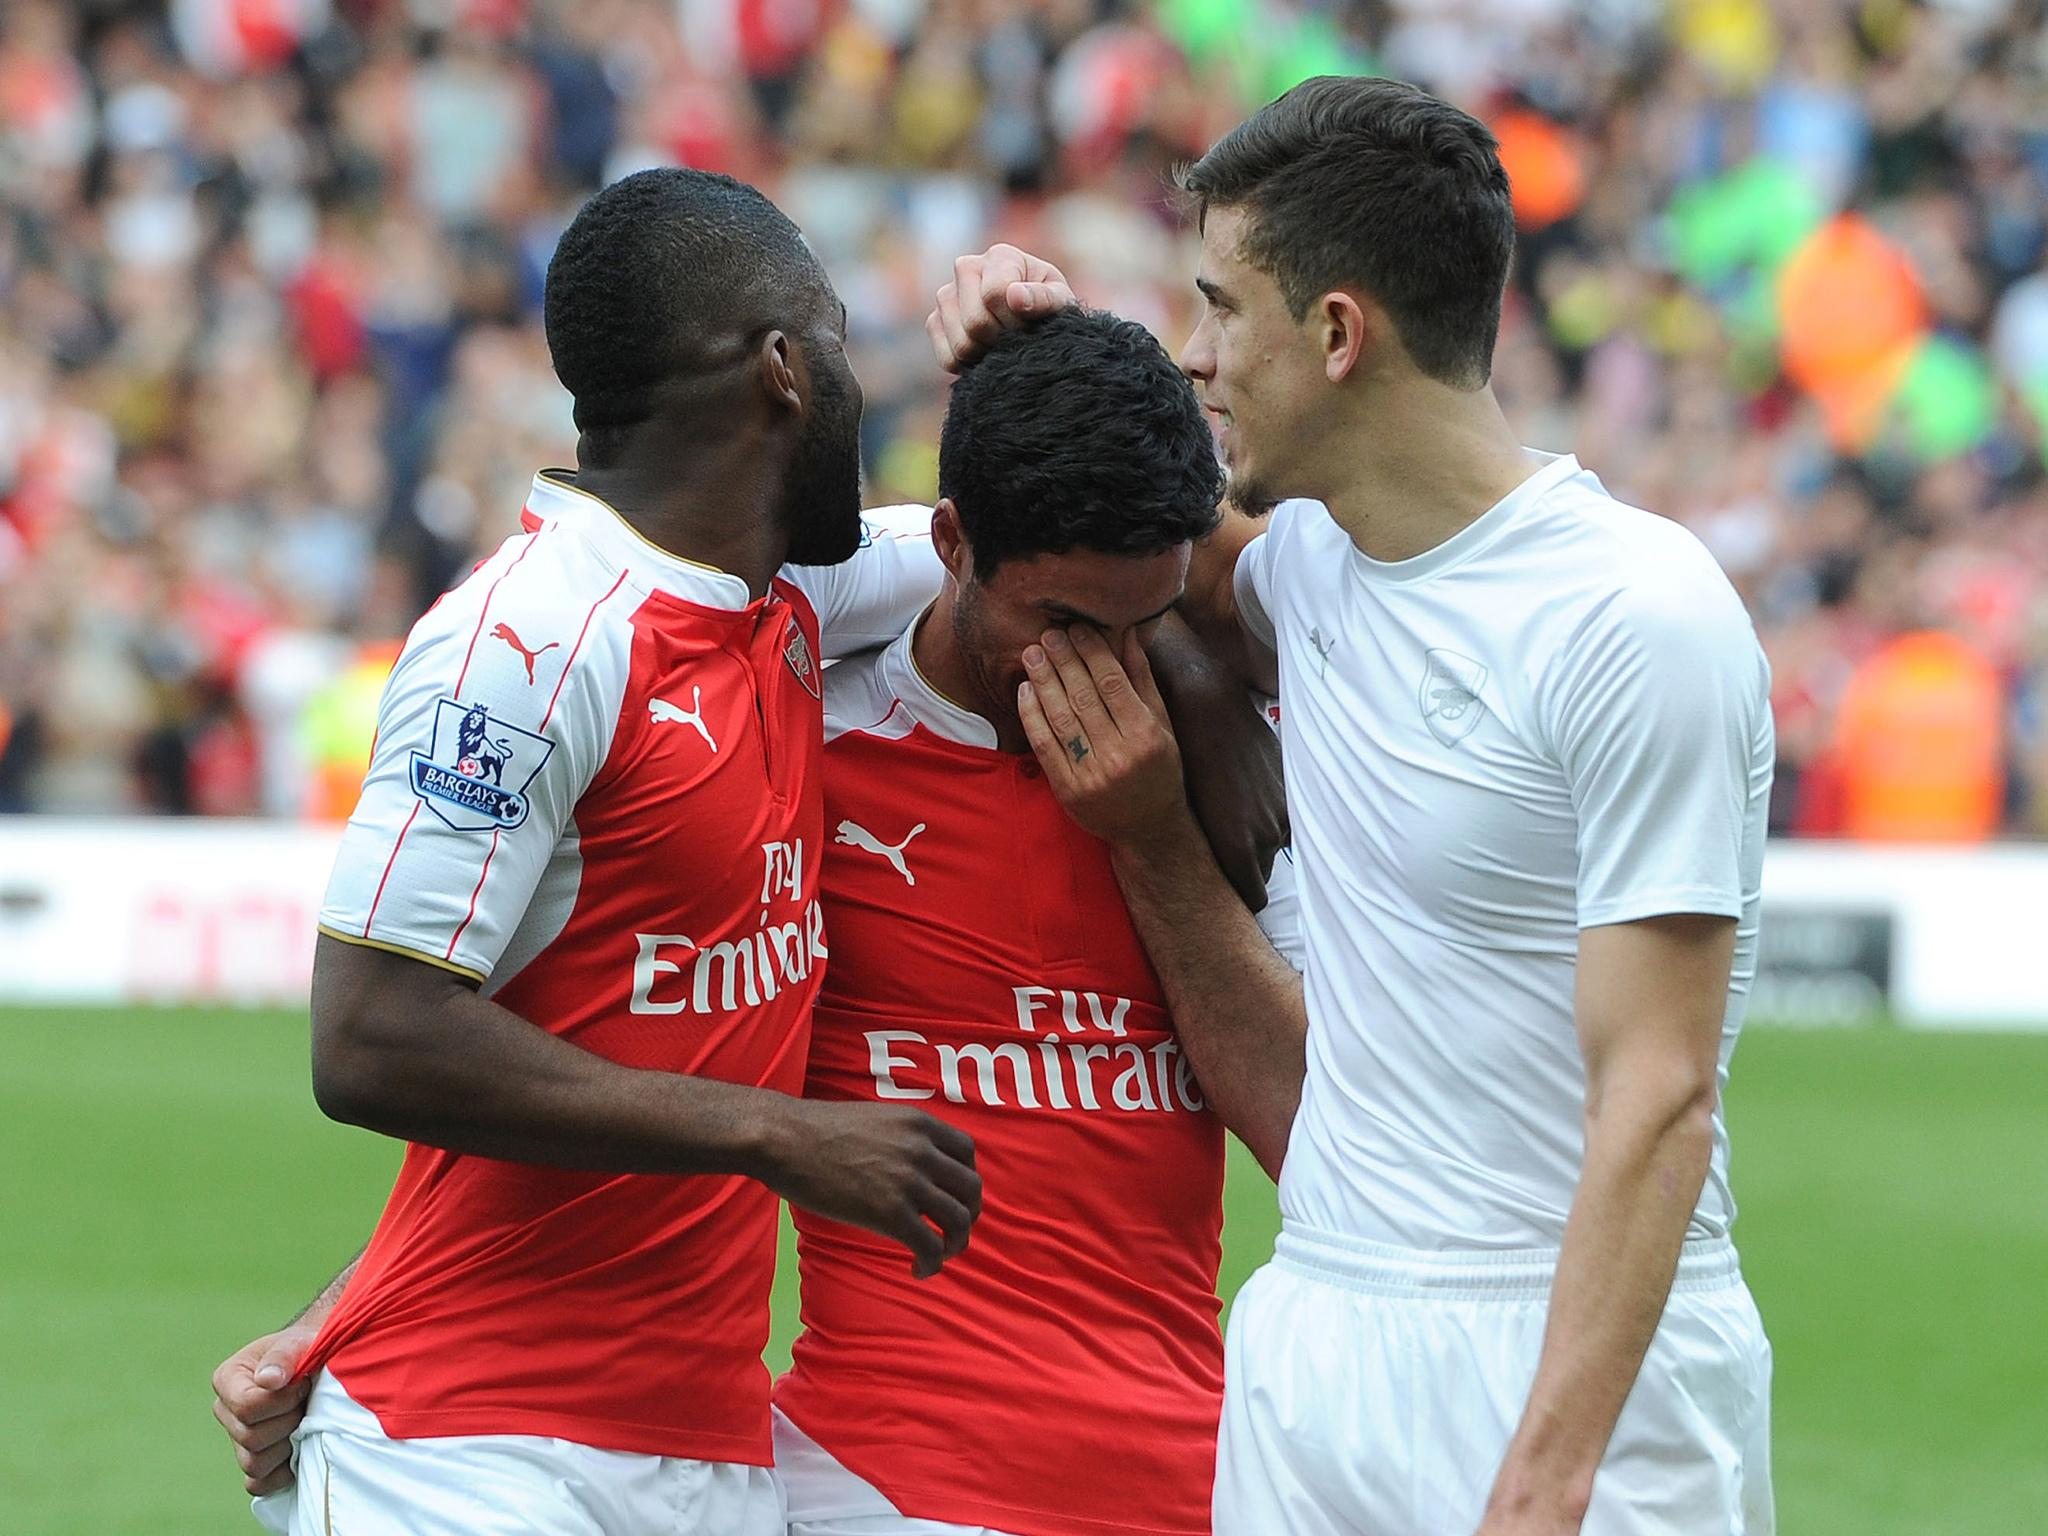 Arsenal transfer news: Mikel Arteta and Tomas Rosicky say farewell to the Emirates ahead of summer exits